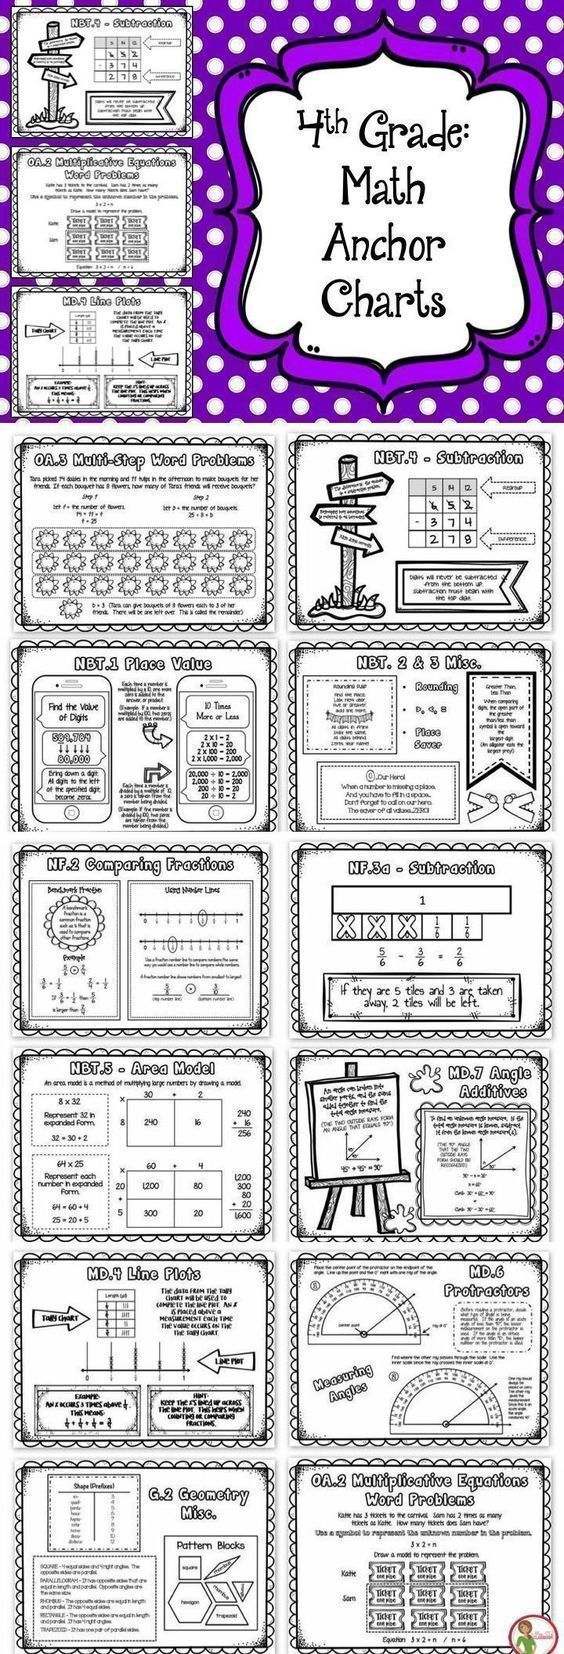 Uncategorized Starfall Math Worksheets best 25 starfall math ideas on pinterest online go game games 4th grade anchor charts for students blackwhite